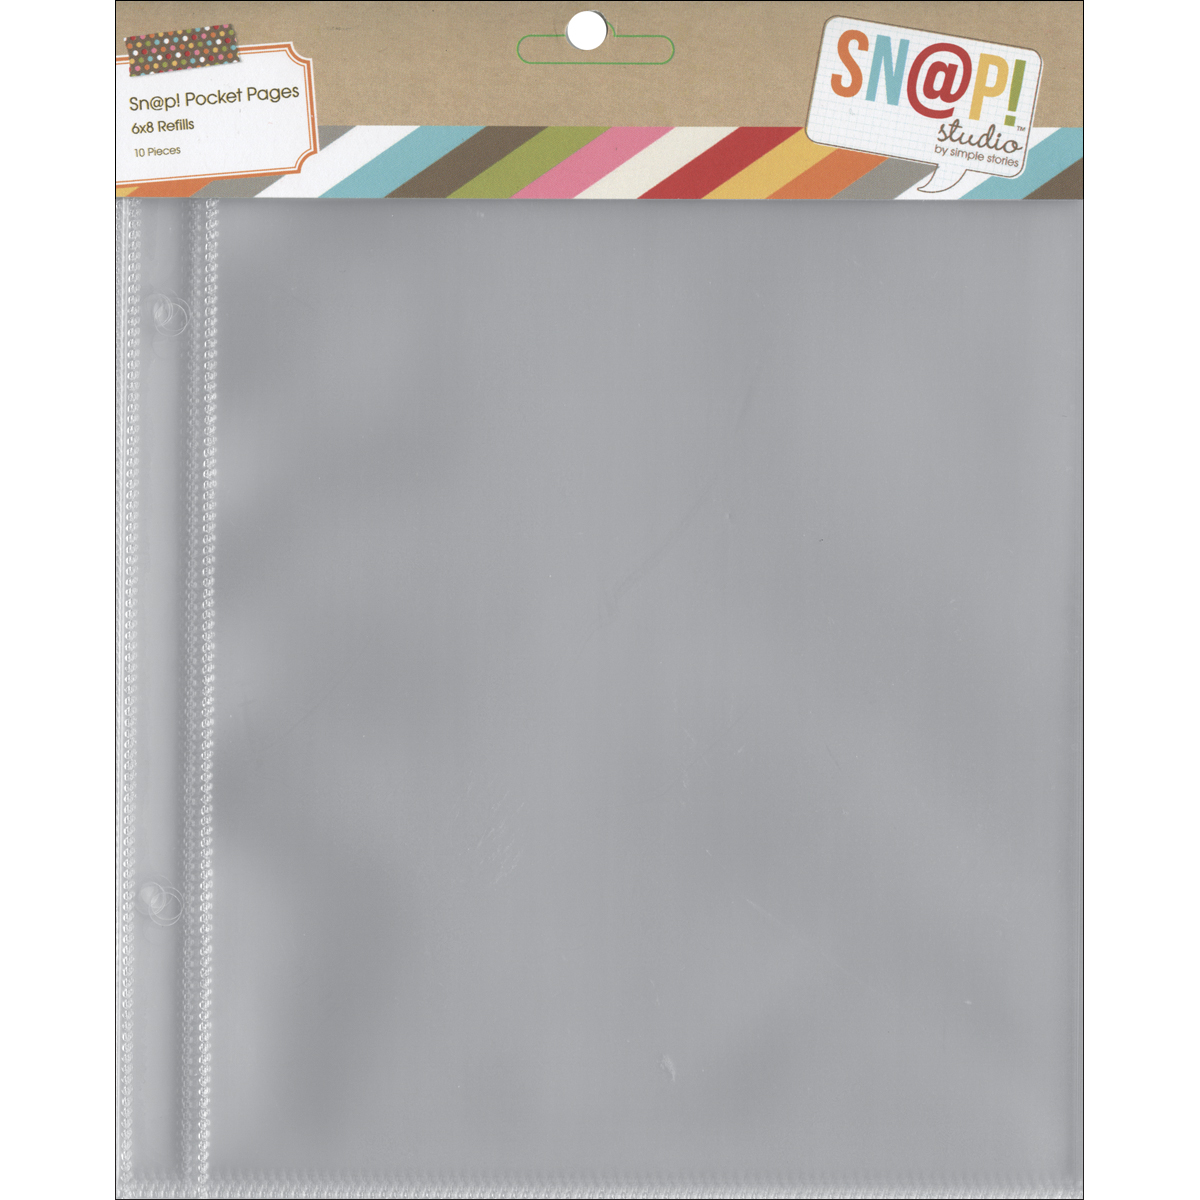 Simple Stories SNAP Studio Collection 6 X 8 Page Protectors